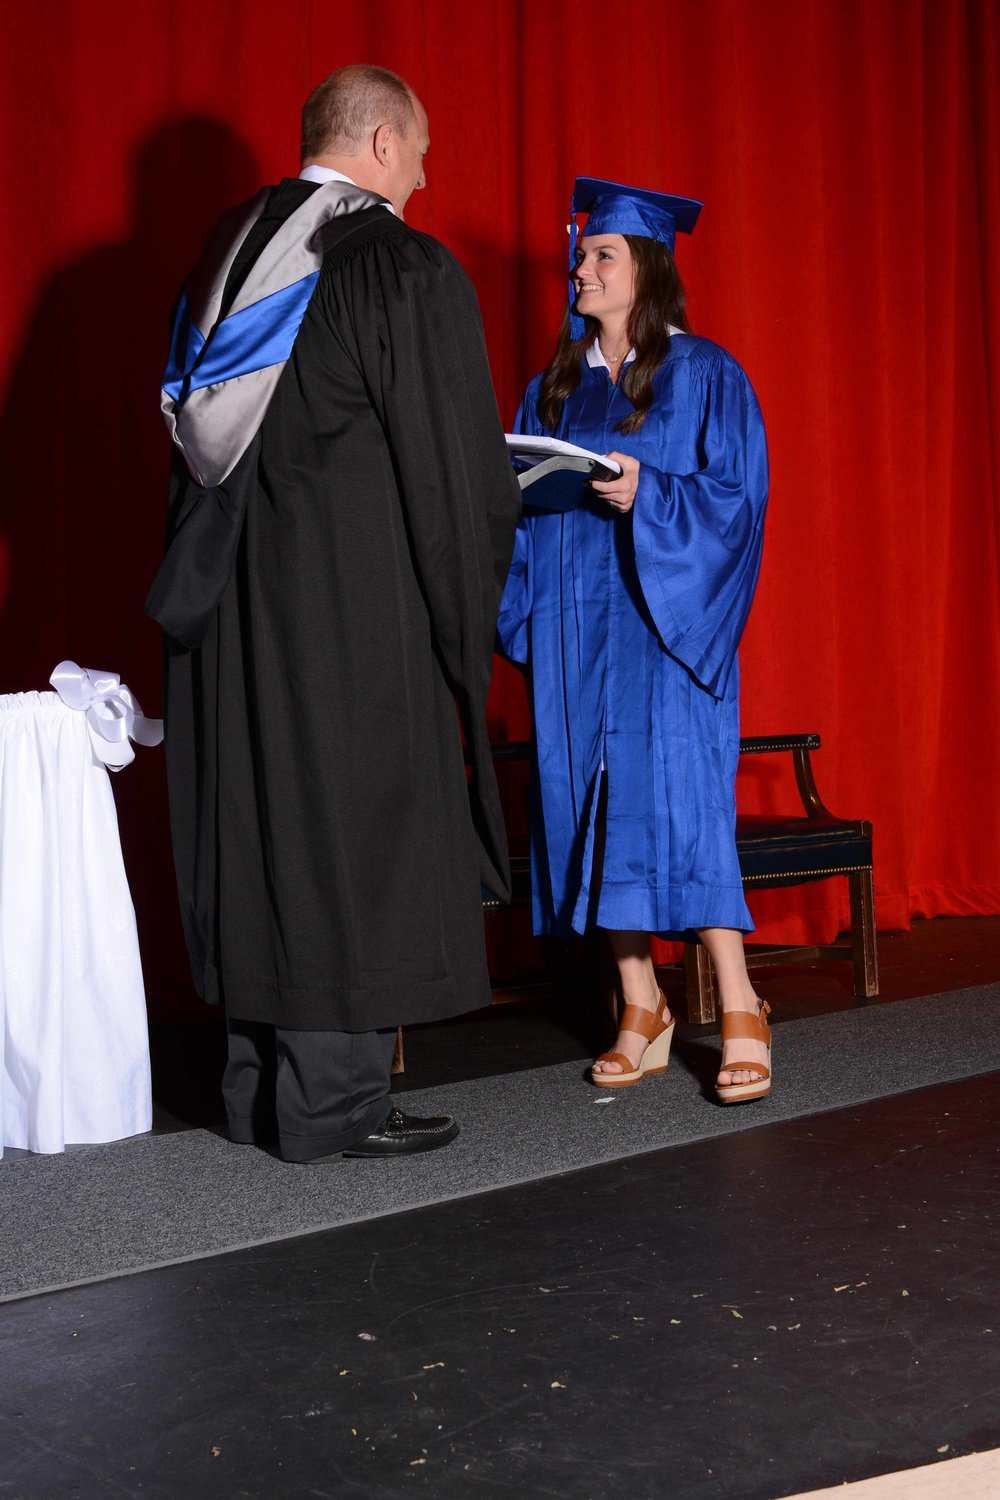 May15 HardingGraduation72.jpg